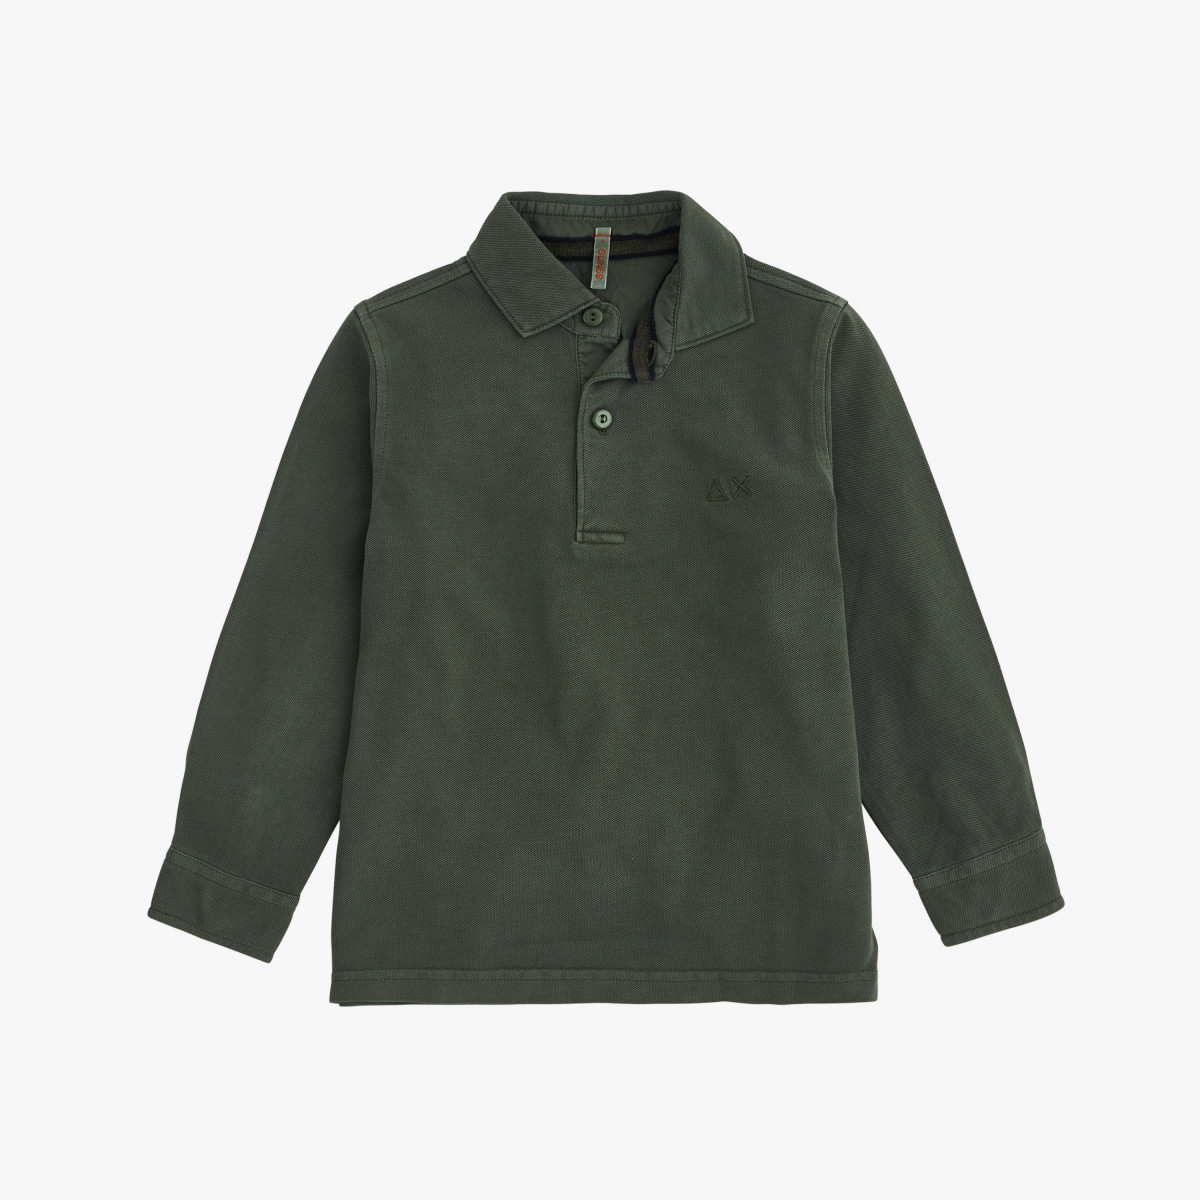 BOY'S POLO COLD DYE L/S OLIVA